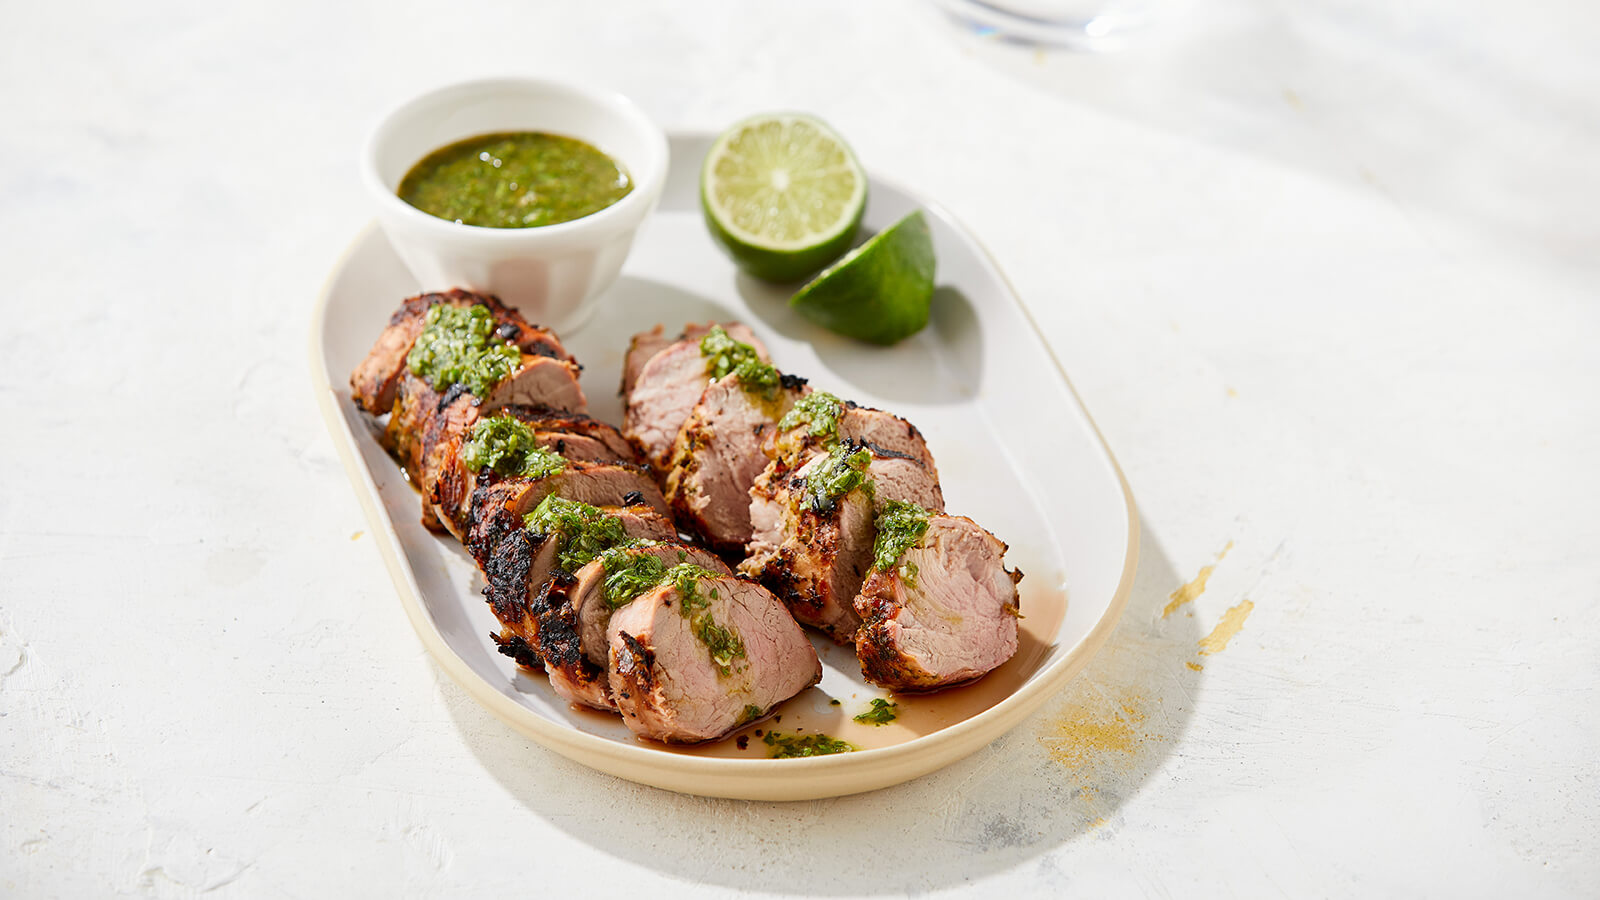 Grilled pork tenderloin with verde chimichurri recipe